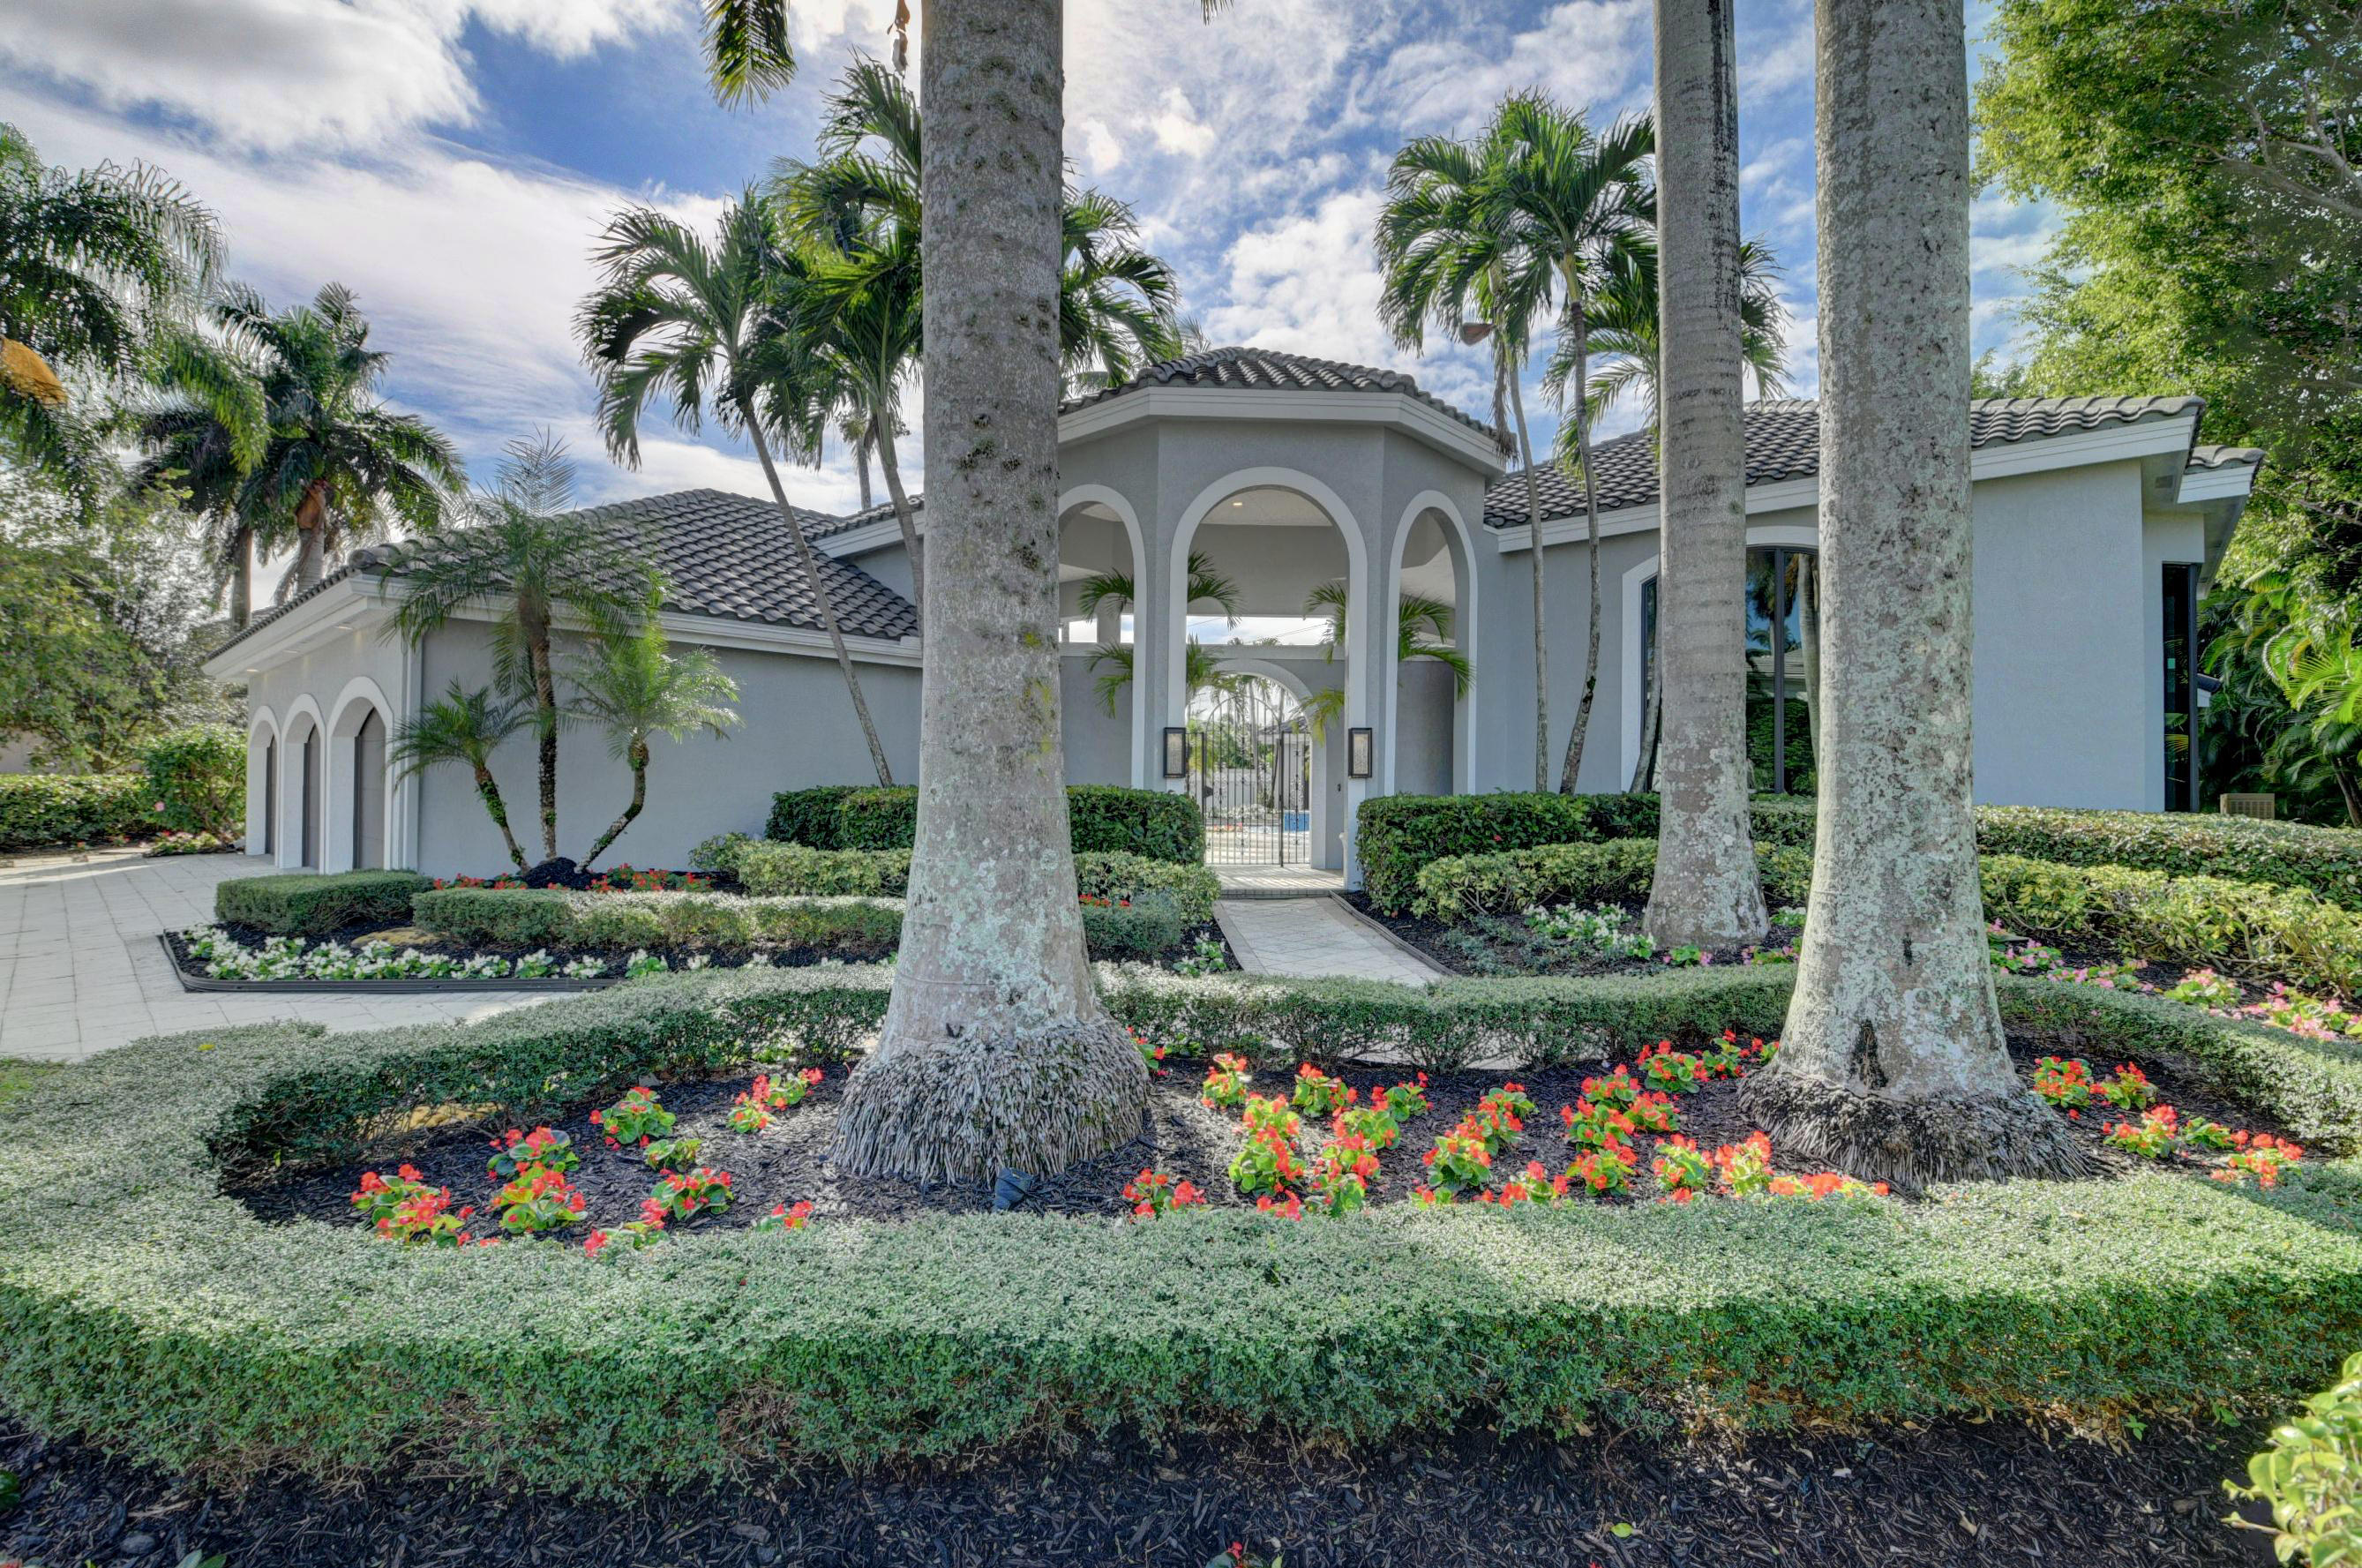 2693 64th Boulevard, Boca Raton, Florida 33496, 4 Bedrooms Bedrooms, ,4 BathroomsBathrooms,Residential,For Sale,64th,RX-10587285